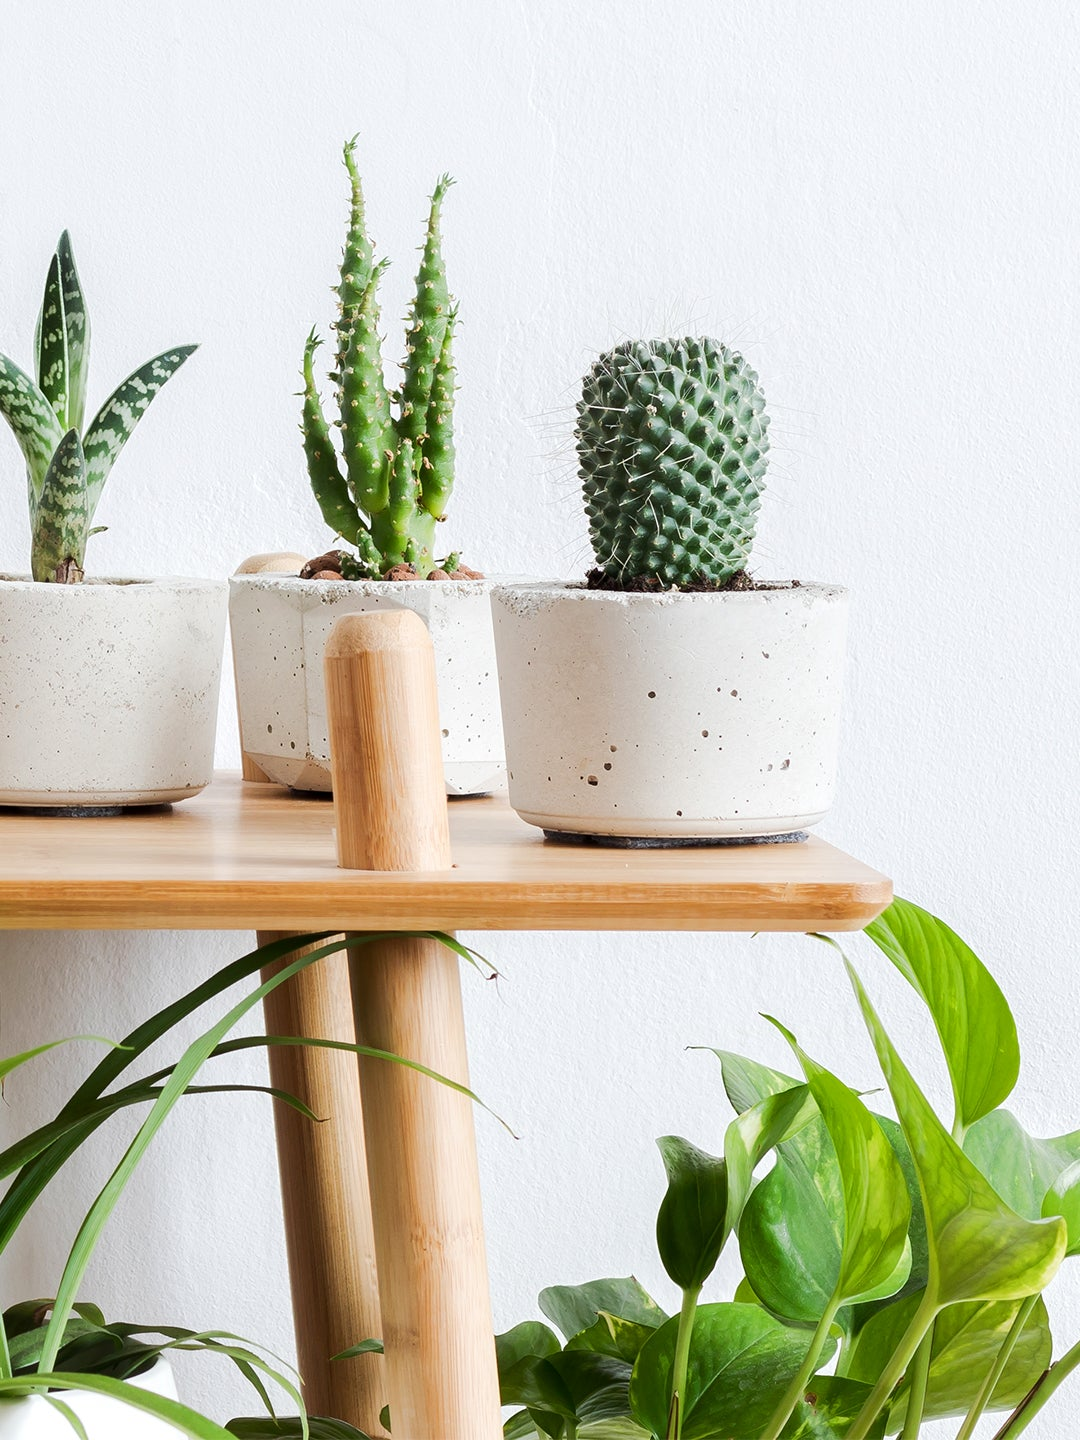 How to Grow Your Very Own Cactus, According to a Plant Pro